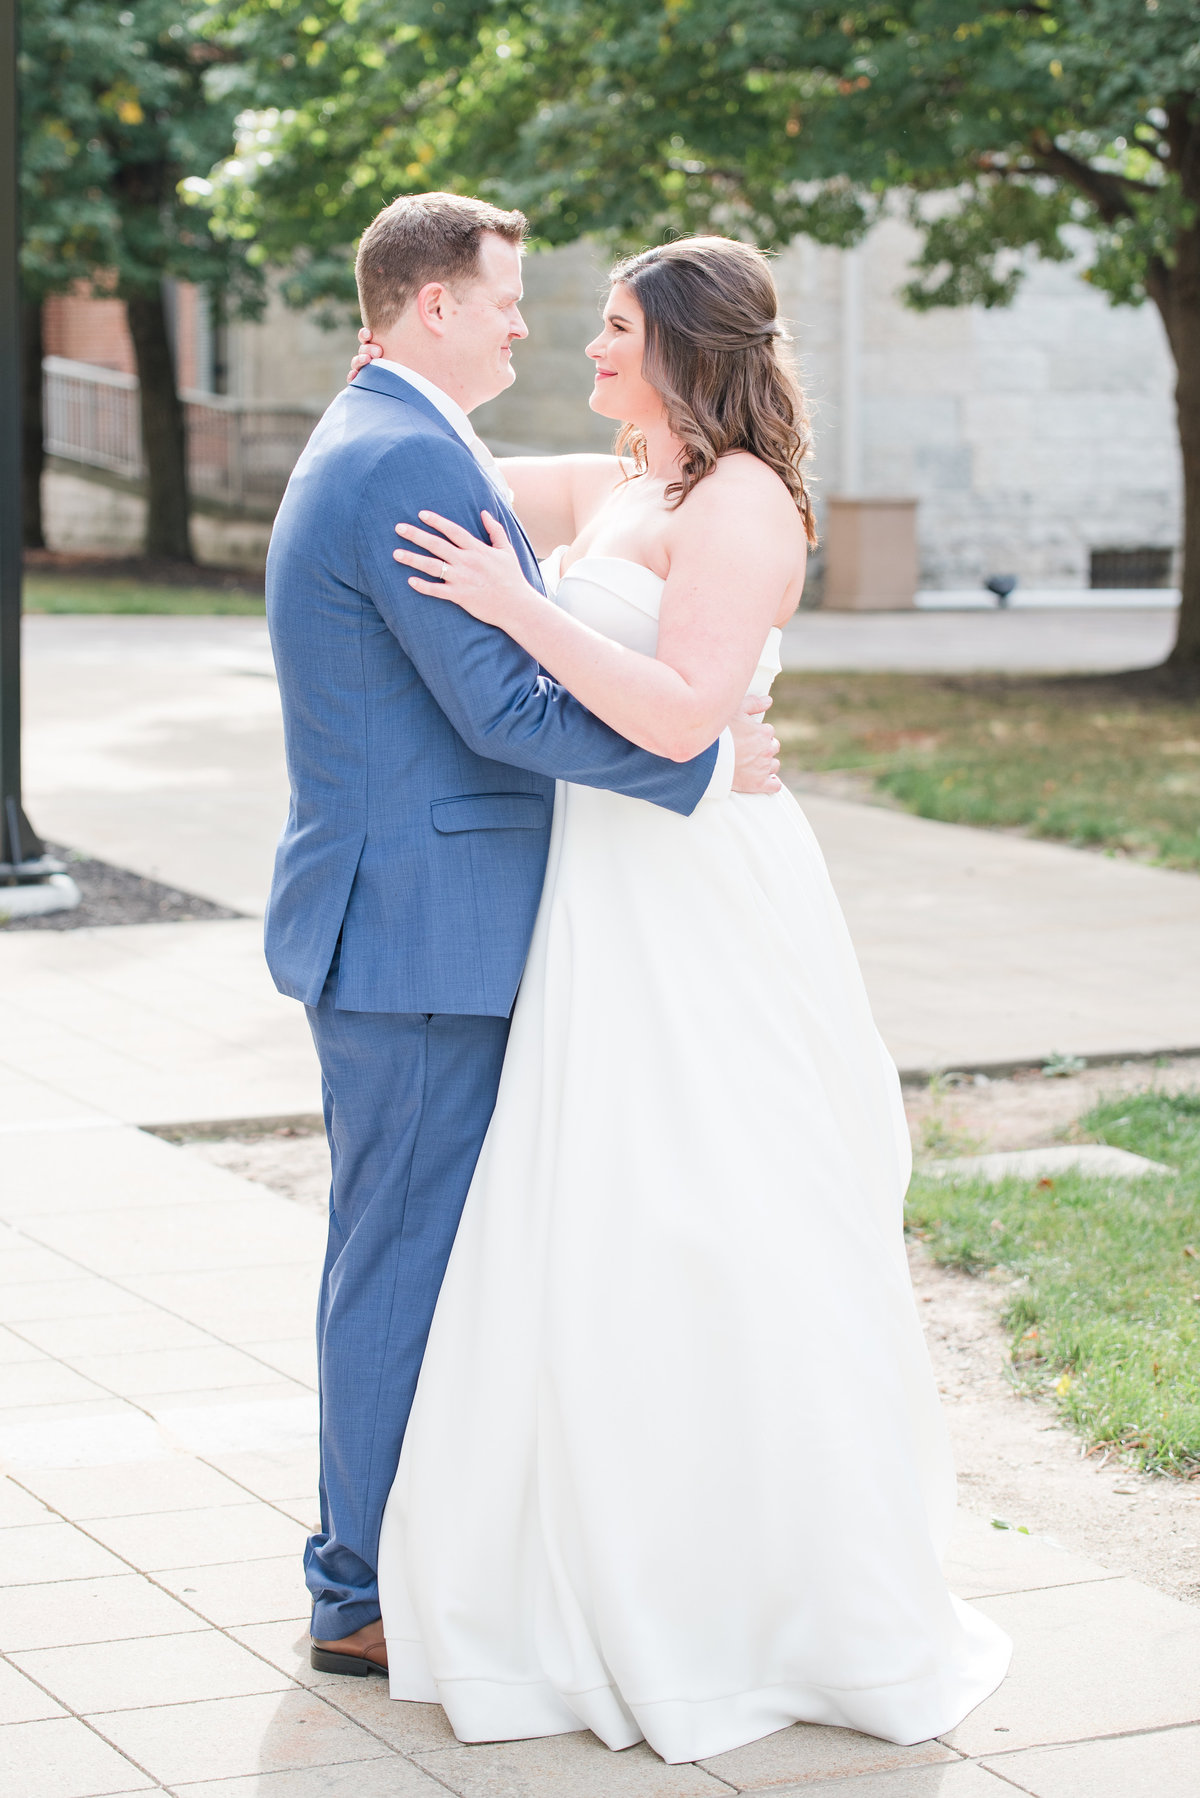 Newlywed Portraits Cait Potter Creative LLC Milltop Potters Bridge Noblesville Square Courthouse Wedding-17